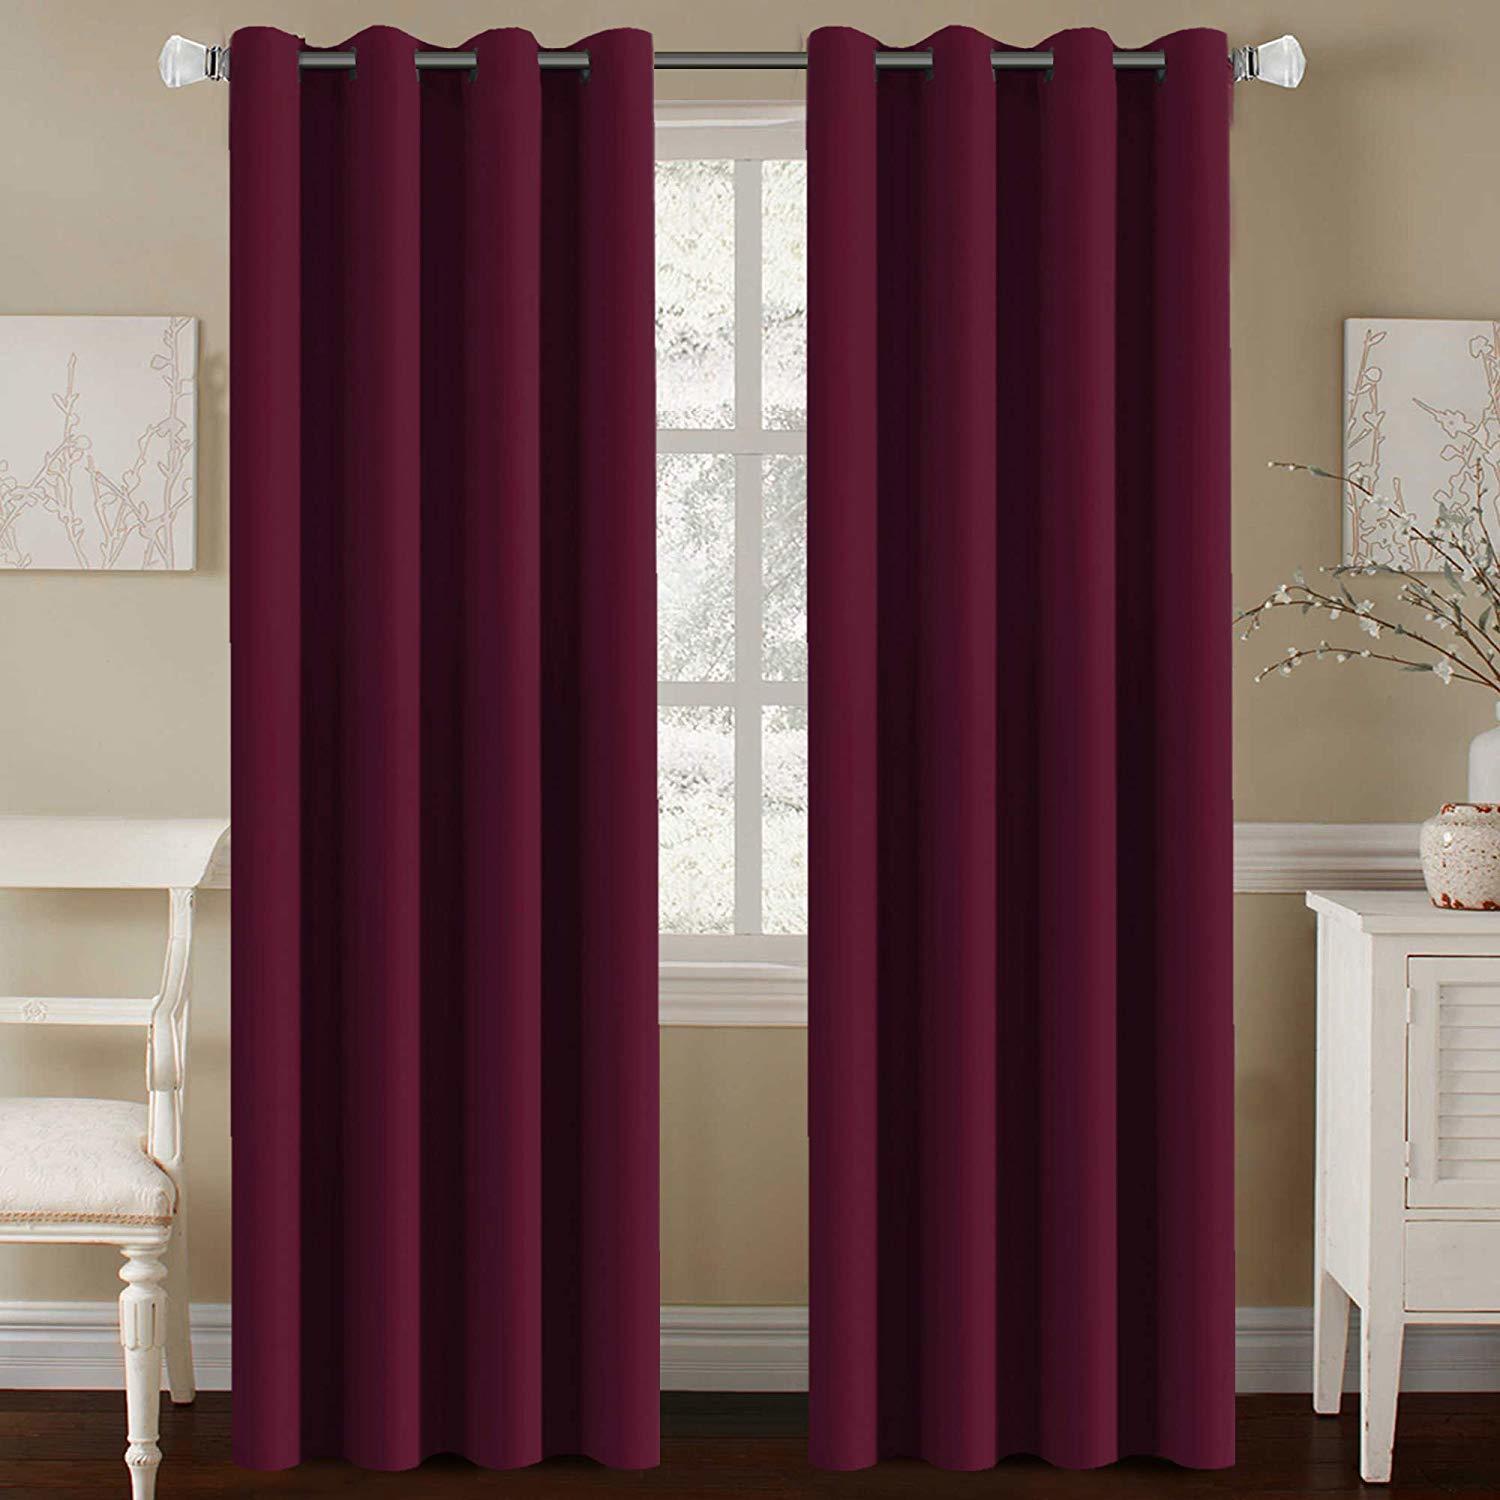 Best Curtains For Living Room Reviews For 2020